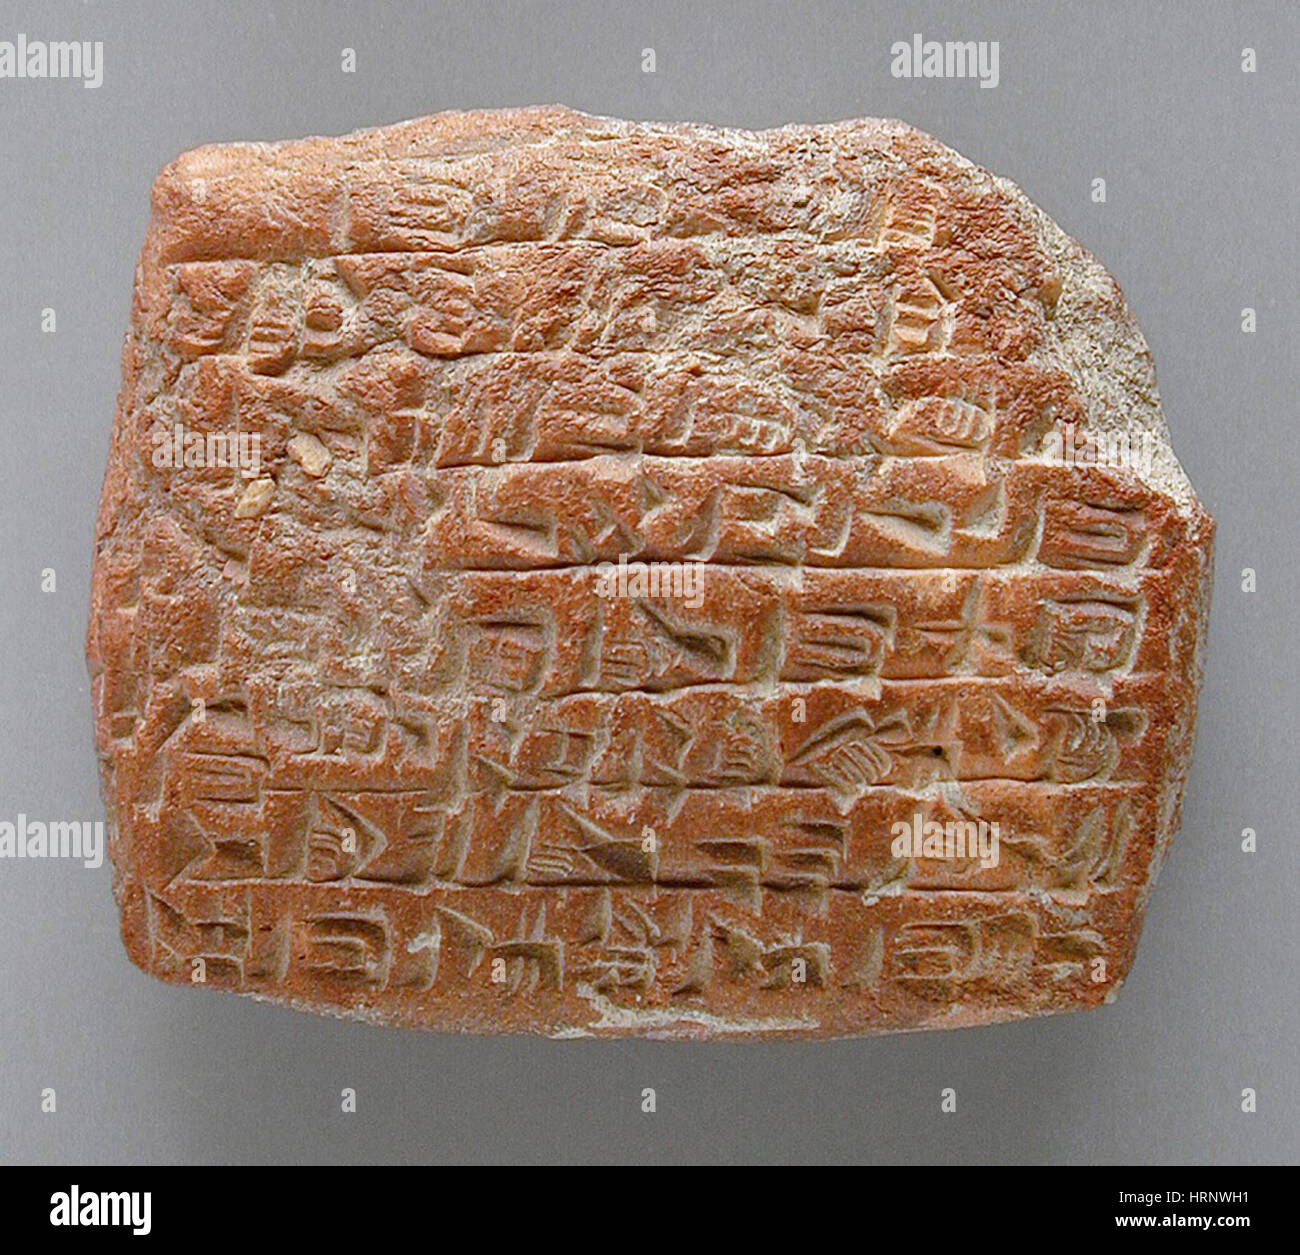 Clay Tablet with Cuneiform Inscription - Stock Image